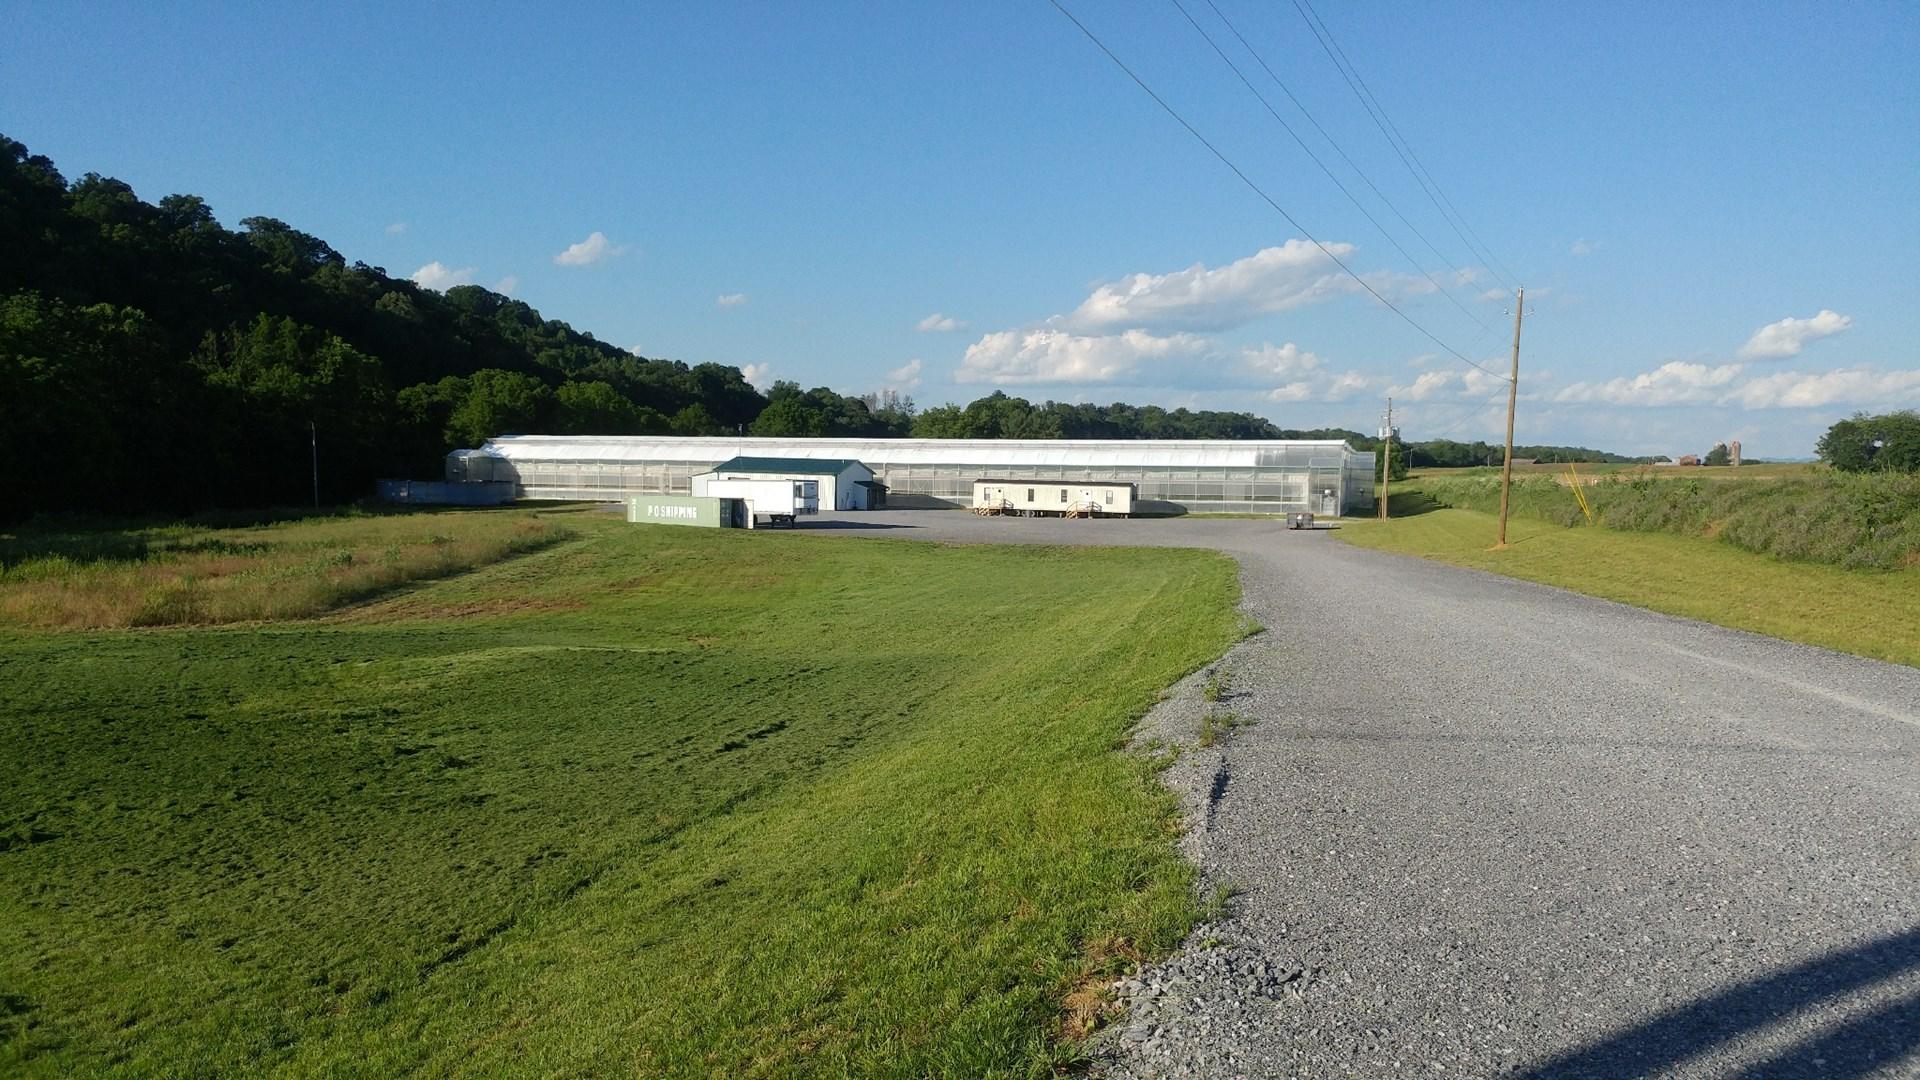 Greene County Greenhouse and Equipment For Sale East Tenn